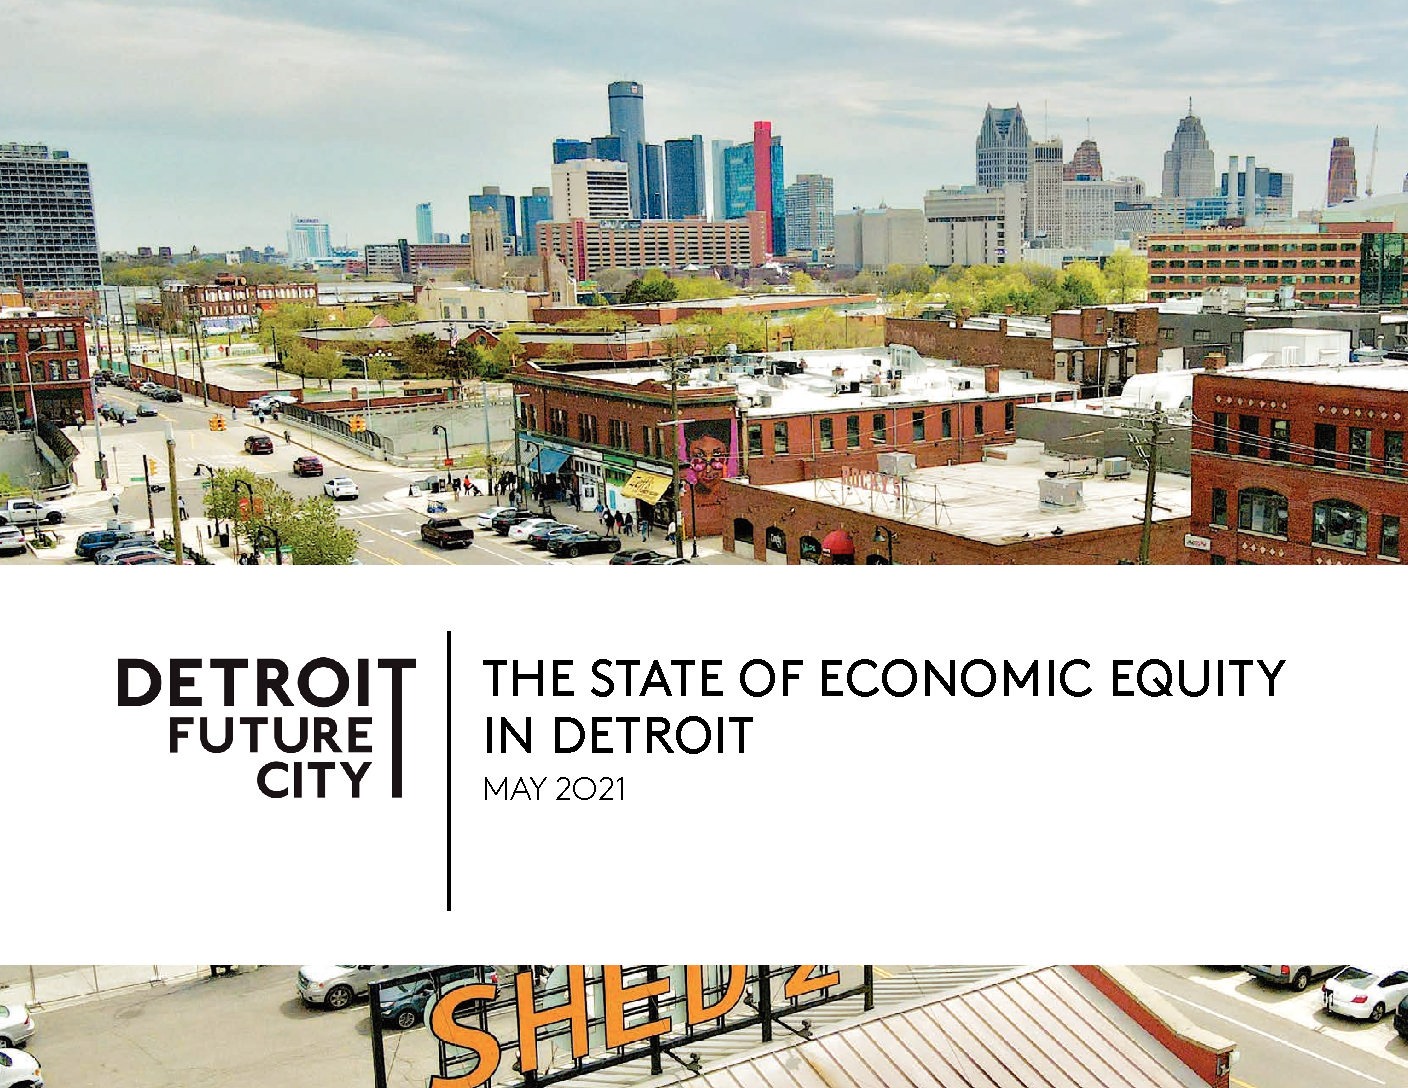 6/6/21: American Black Journal – Detroit Future City / Discover your Spark